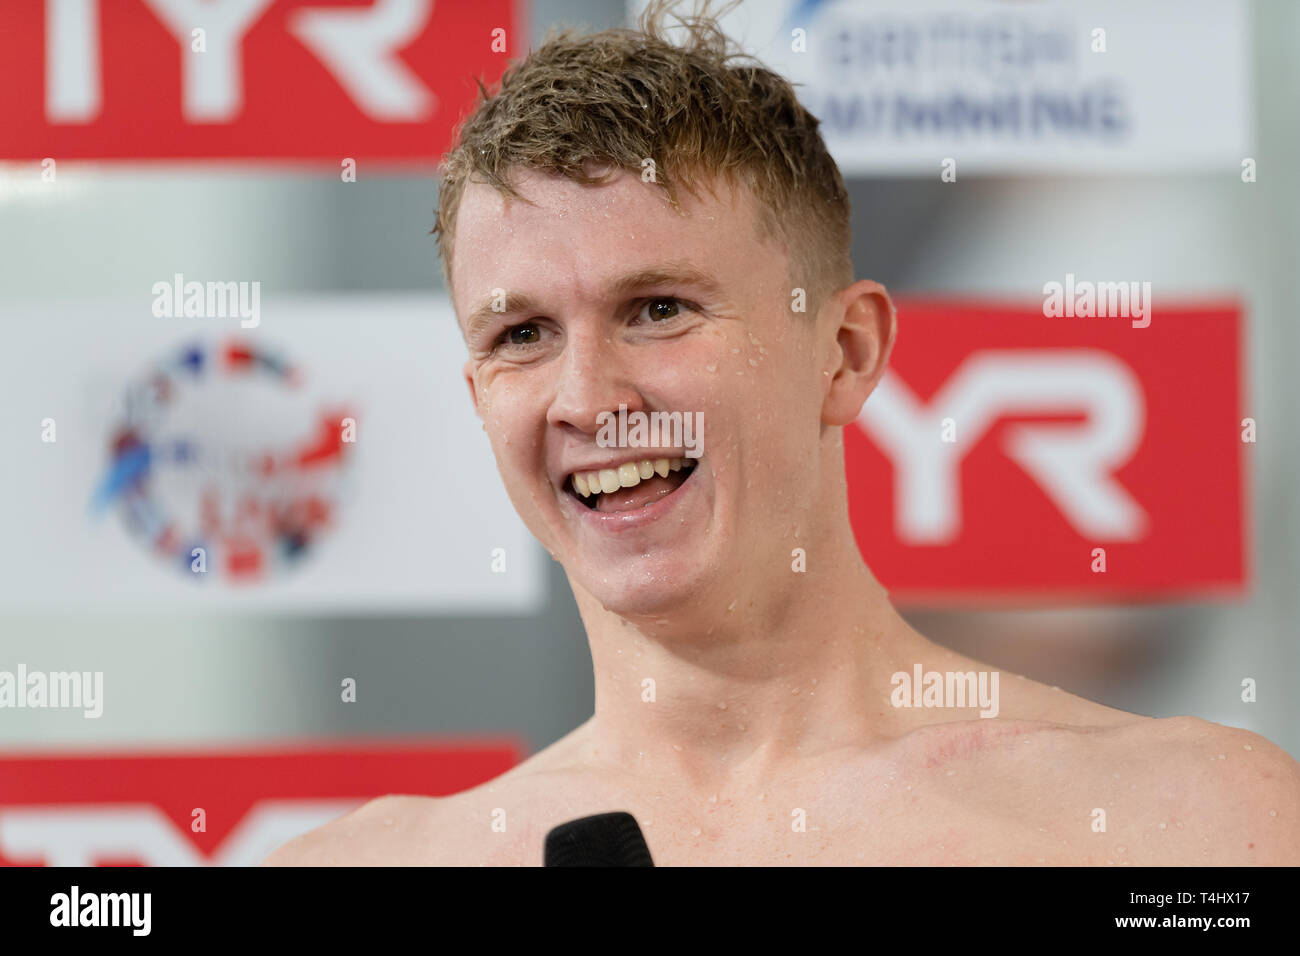 Glasgow, UK. 16th Apr, 2019. Thomas Howdle interviewed by press after winning the British Championship for Men Open 50m Backstroke Final during British Swimming Championships 2019 at Tollcross International Swimming Centre on Tuesday, April 16, 2019 in Glasgow Scotland. Credit: Taka G Wu/Alamy Live News - Stock Image